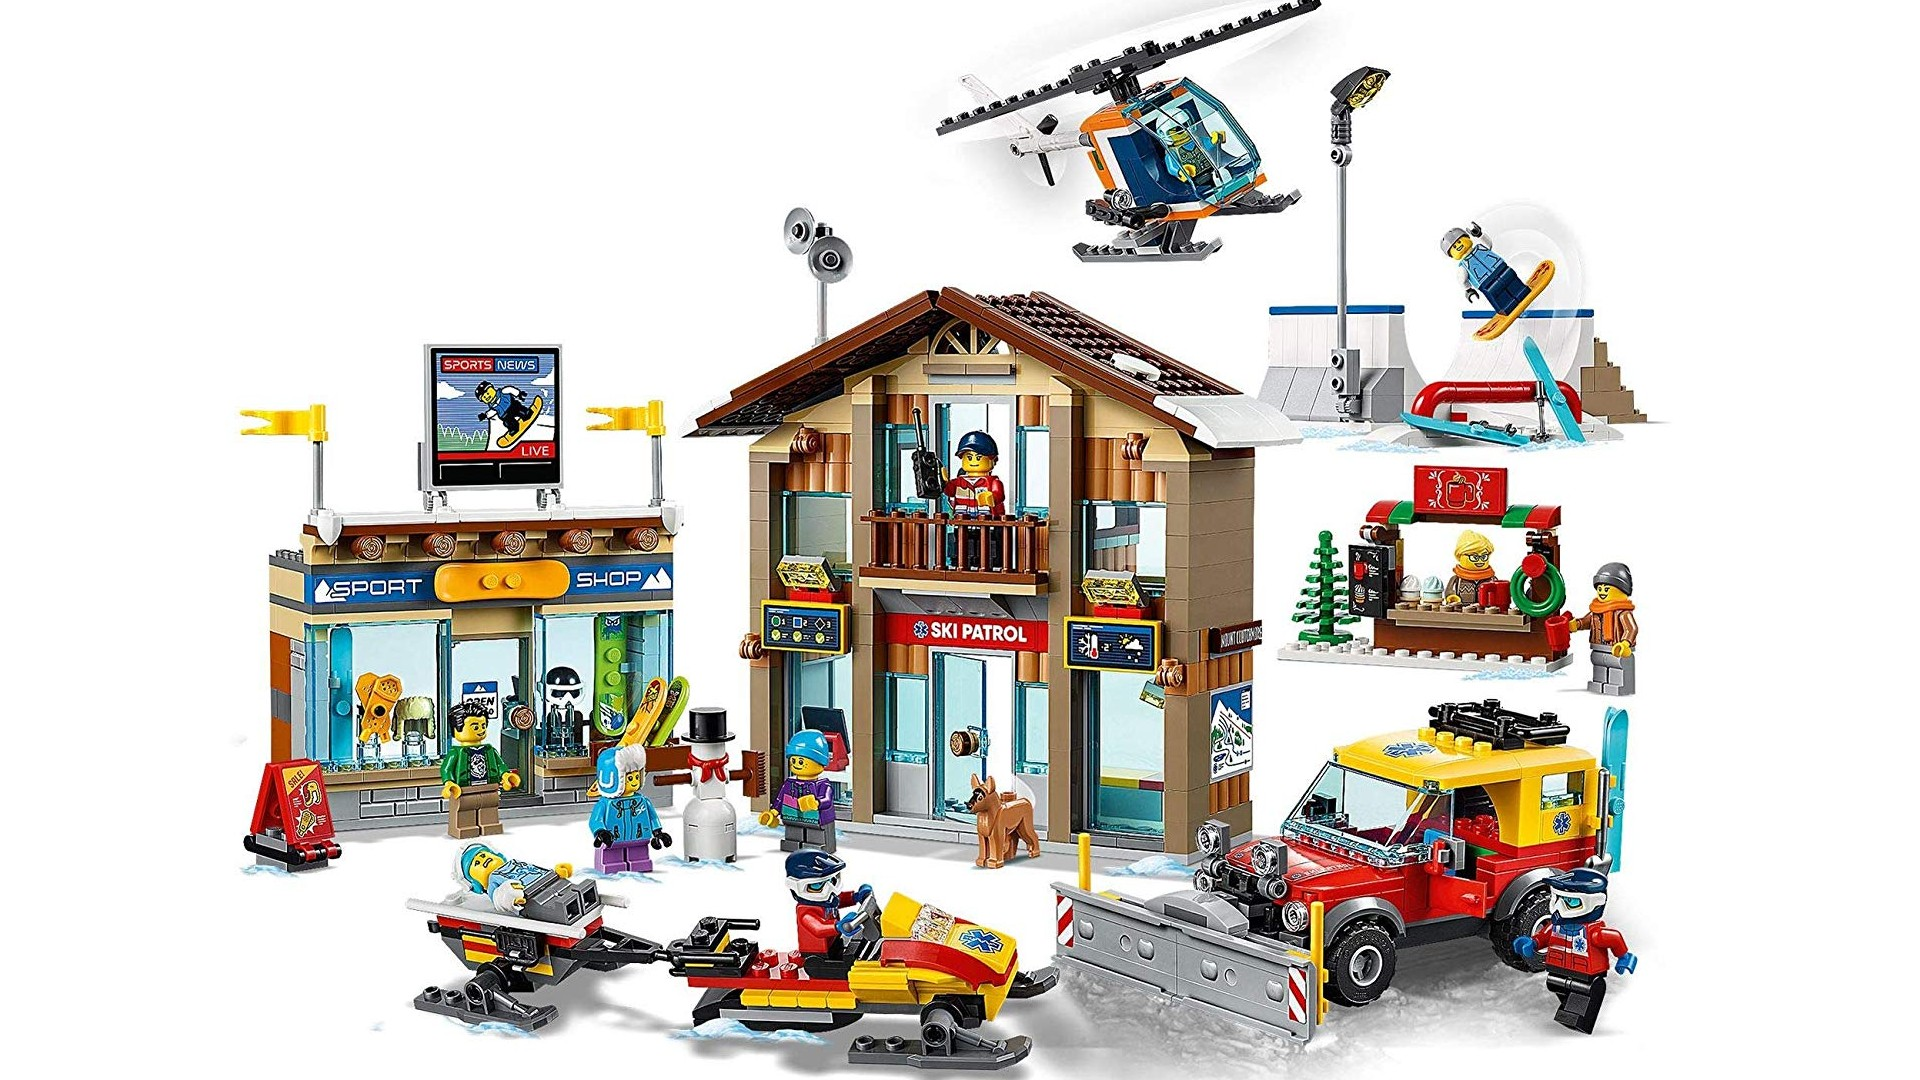 Best Lego City sets: Ski Resort